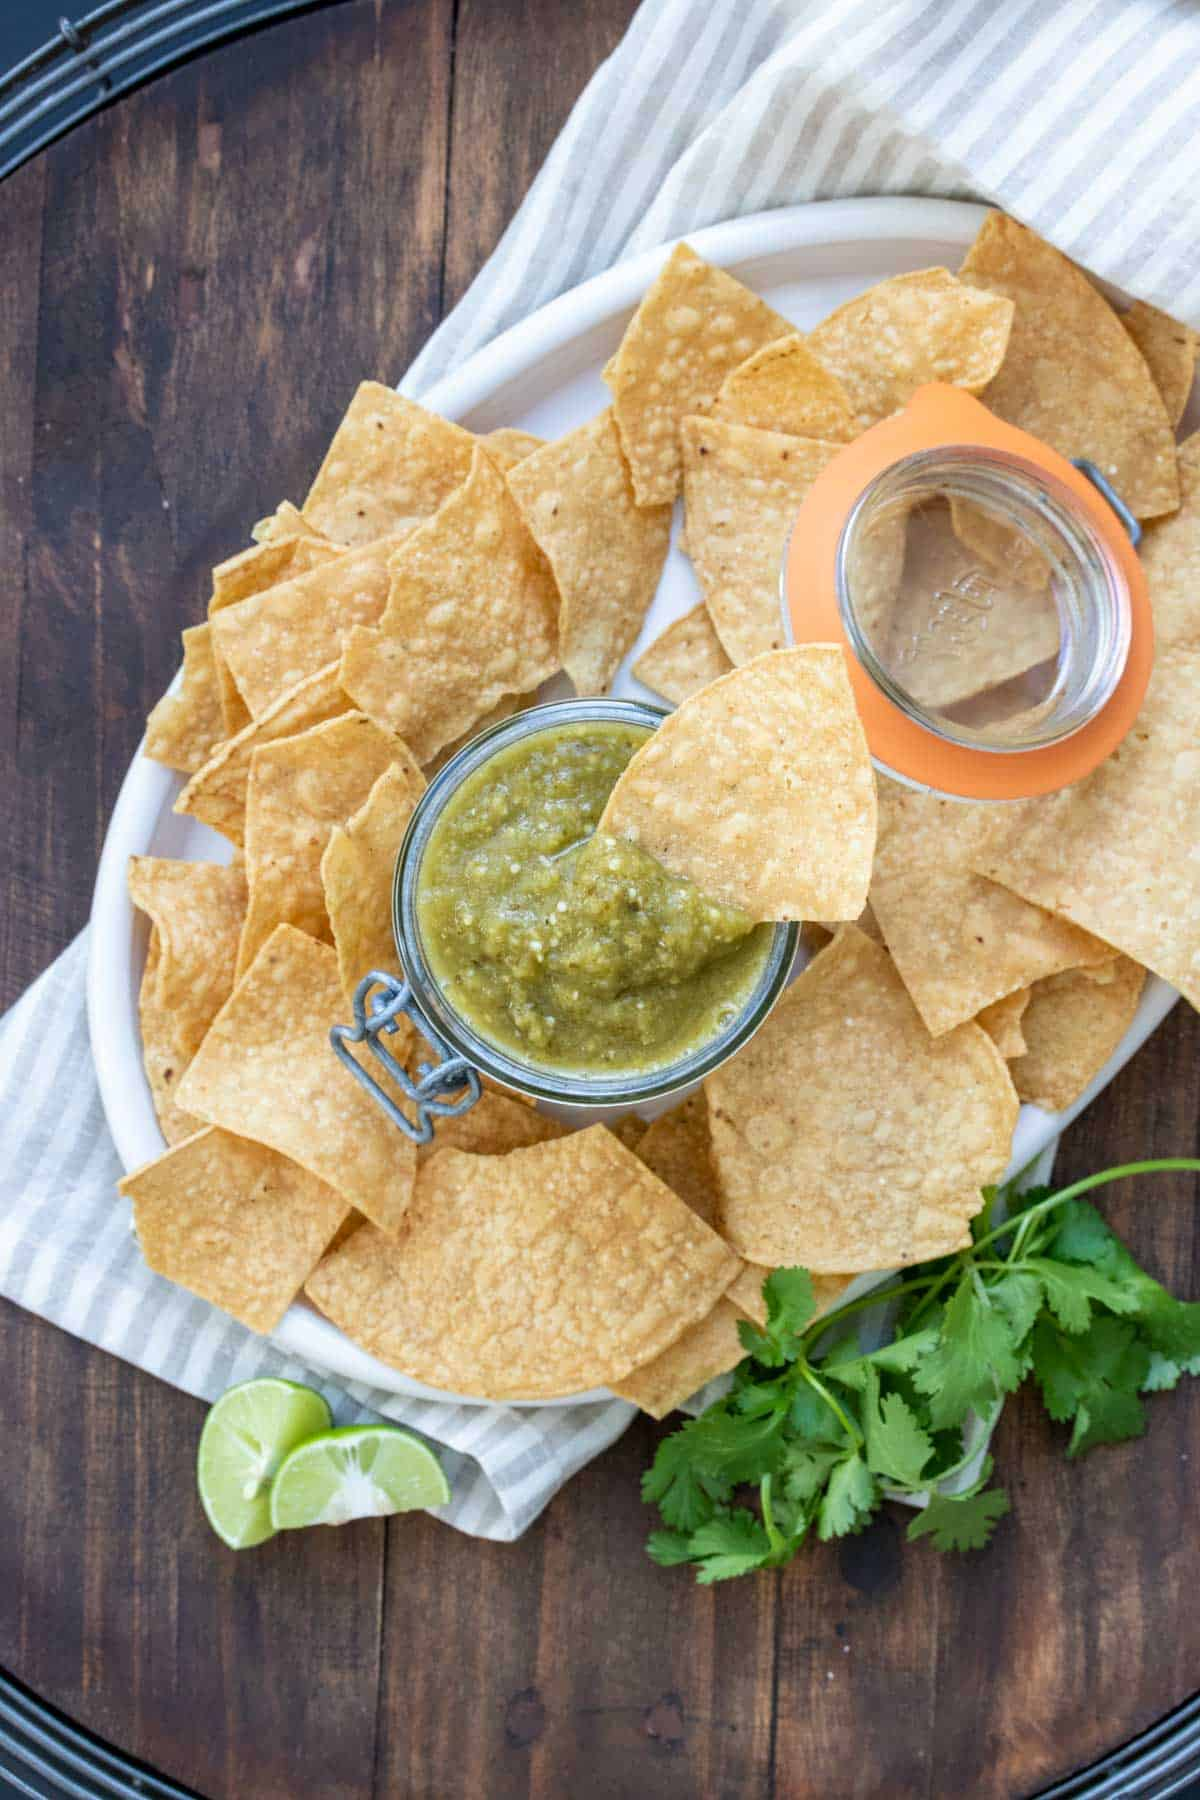 Plate with tortilla chips and a jar of salsa verde with a chip in it